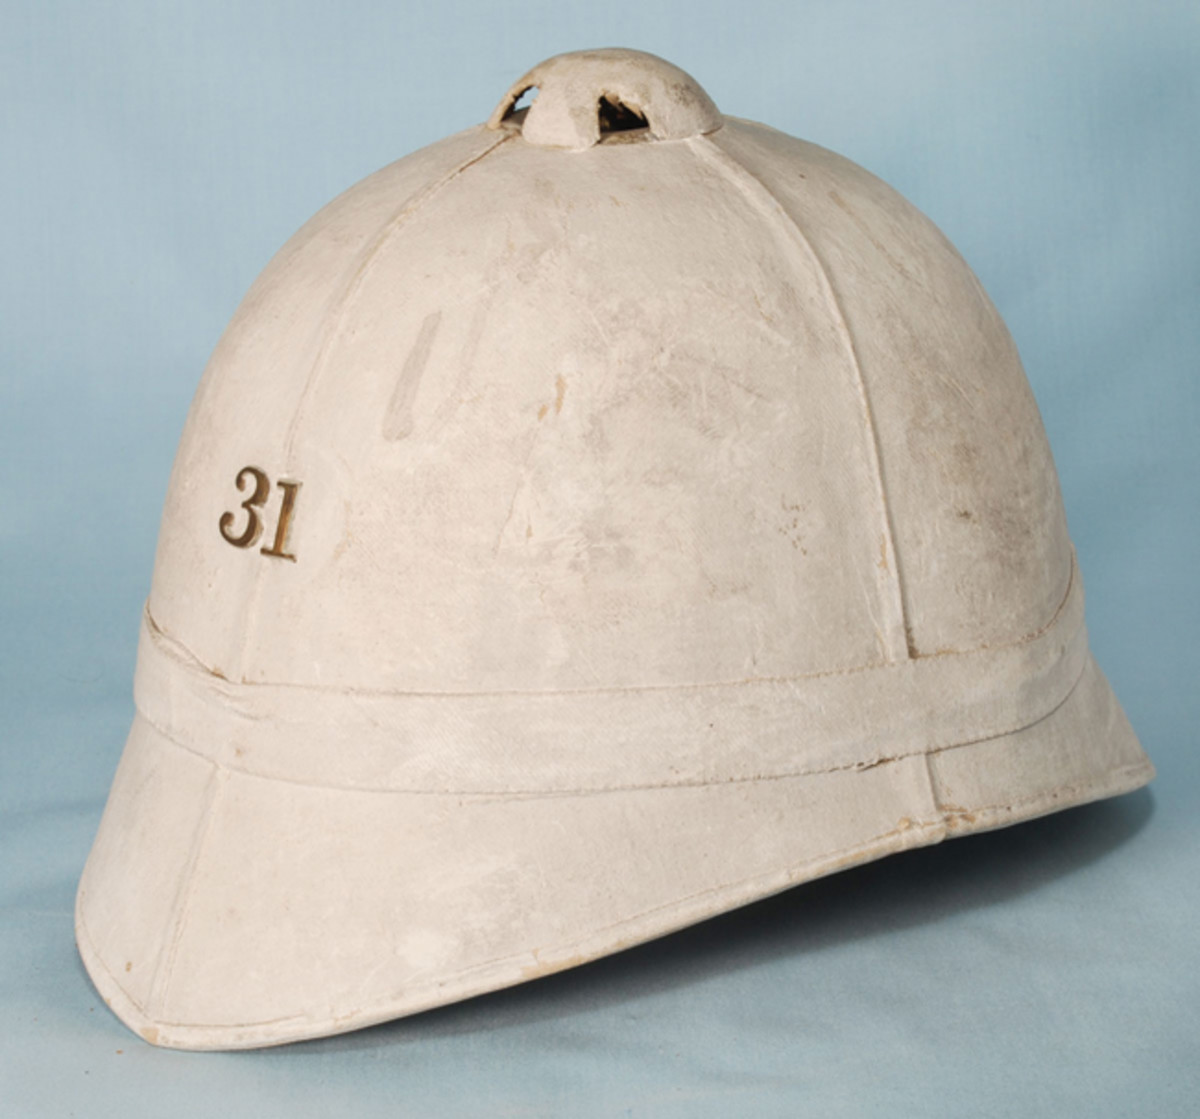 Similar in design to the U.S. Army sun helmets the National Guard helmets featured a more pointed front visor. These helmets are often misrepresented as U.S. Army or even USMC helmets (Collection of the author).